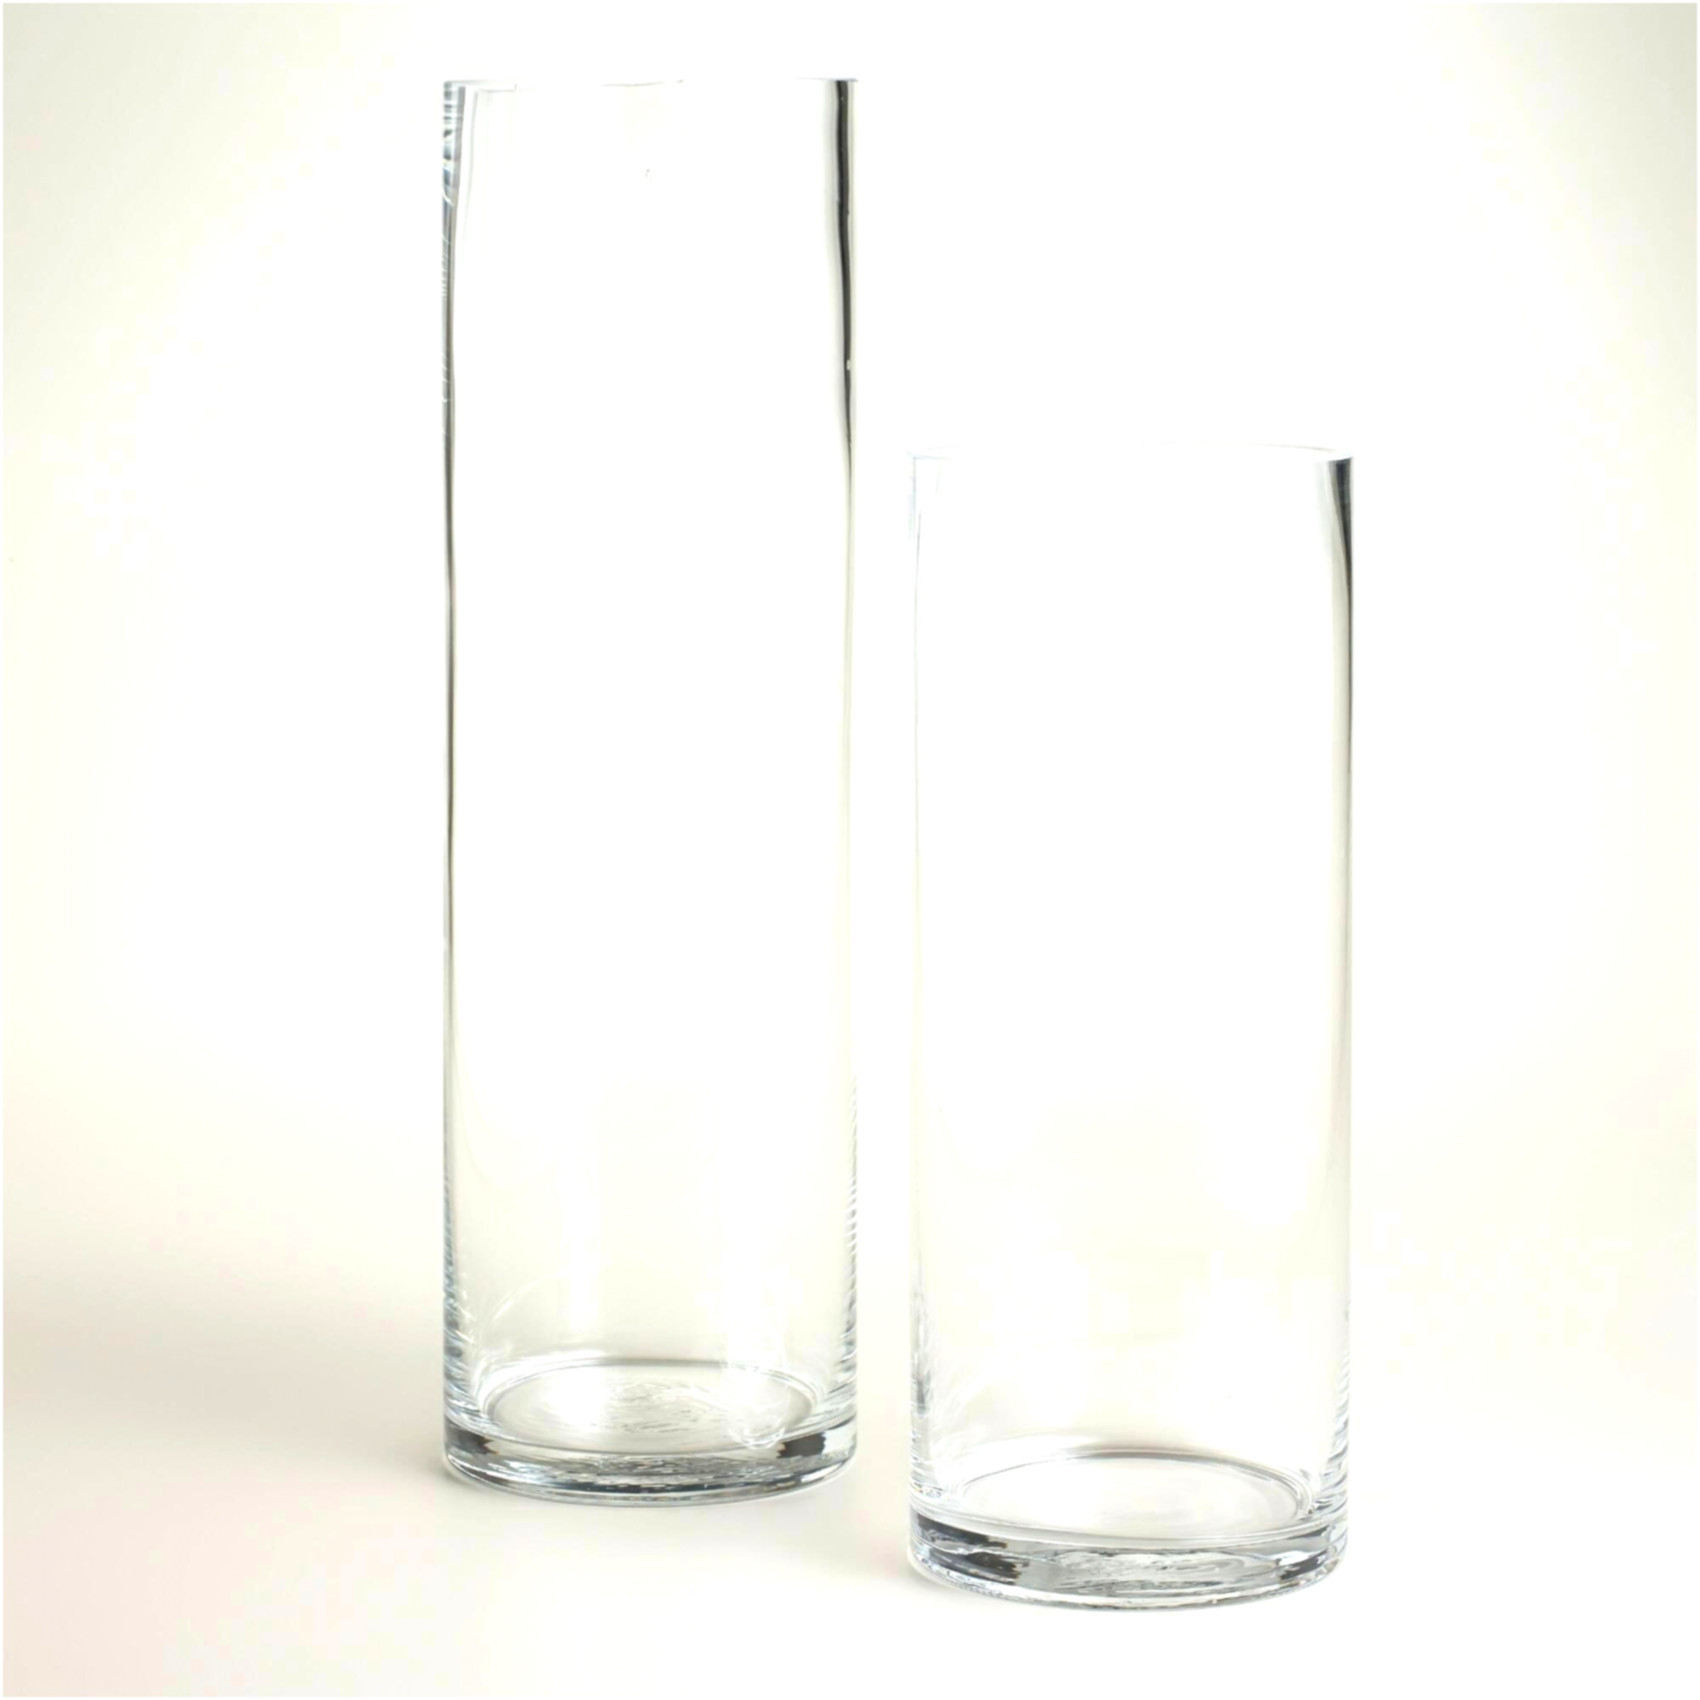 tall pilsner glass vases of why you should not go to glass vases wholesale glass vases within crystal glass vases wholesale inspirational 30 elegant vases with